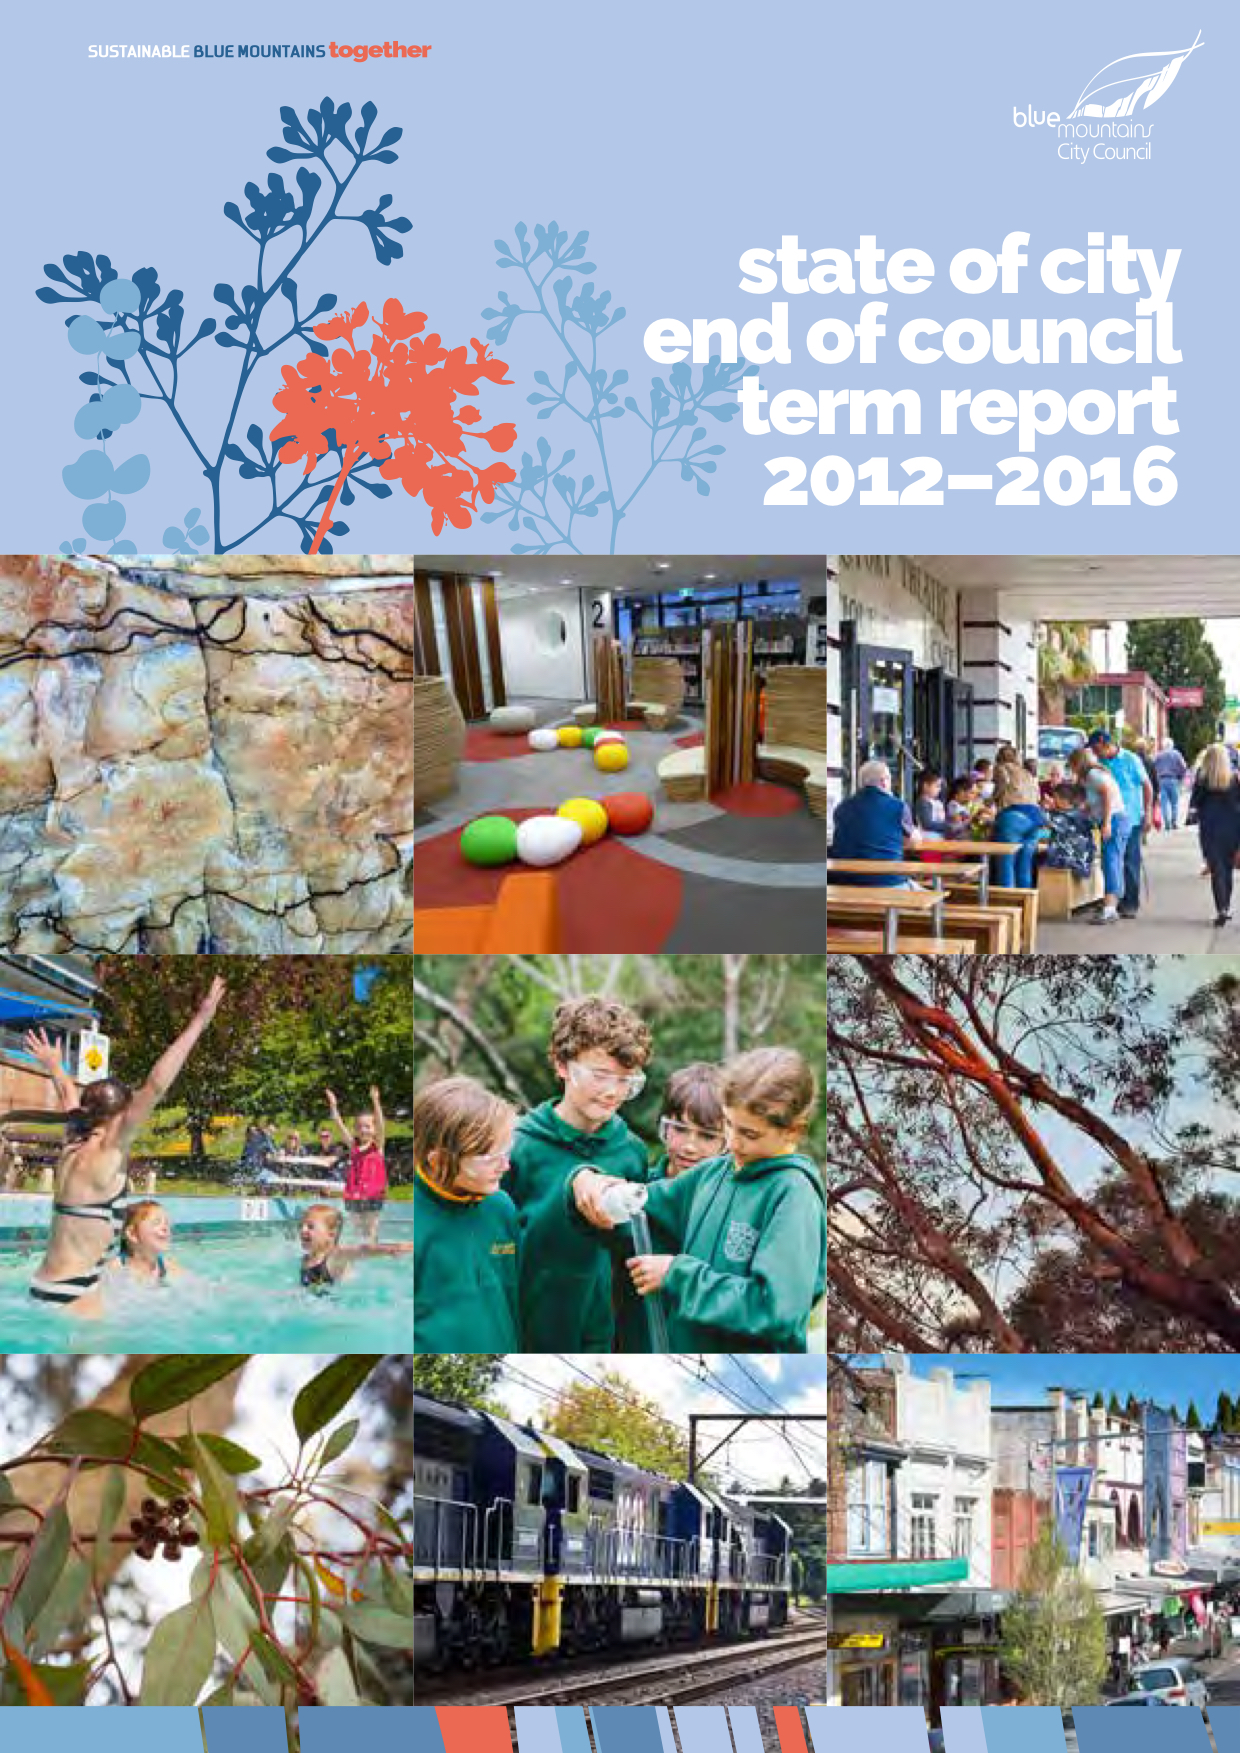 State of City End of Council Term Report 2012-2016